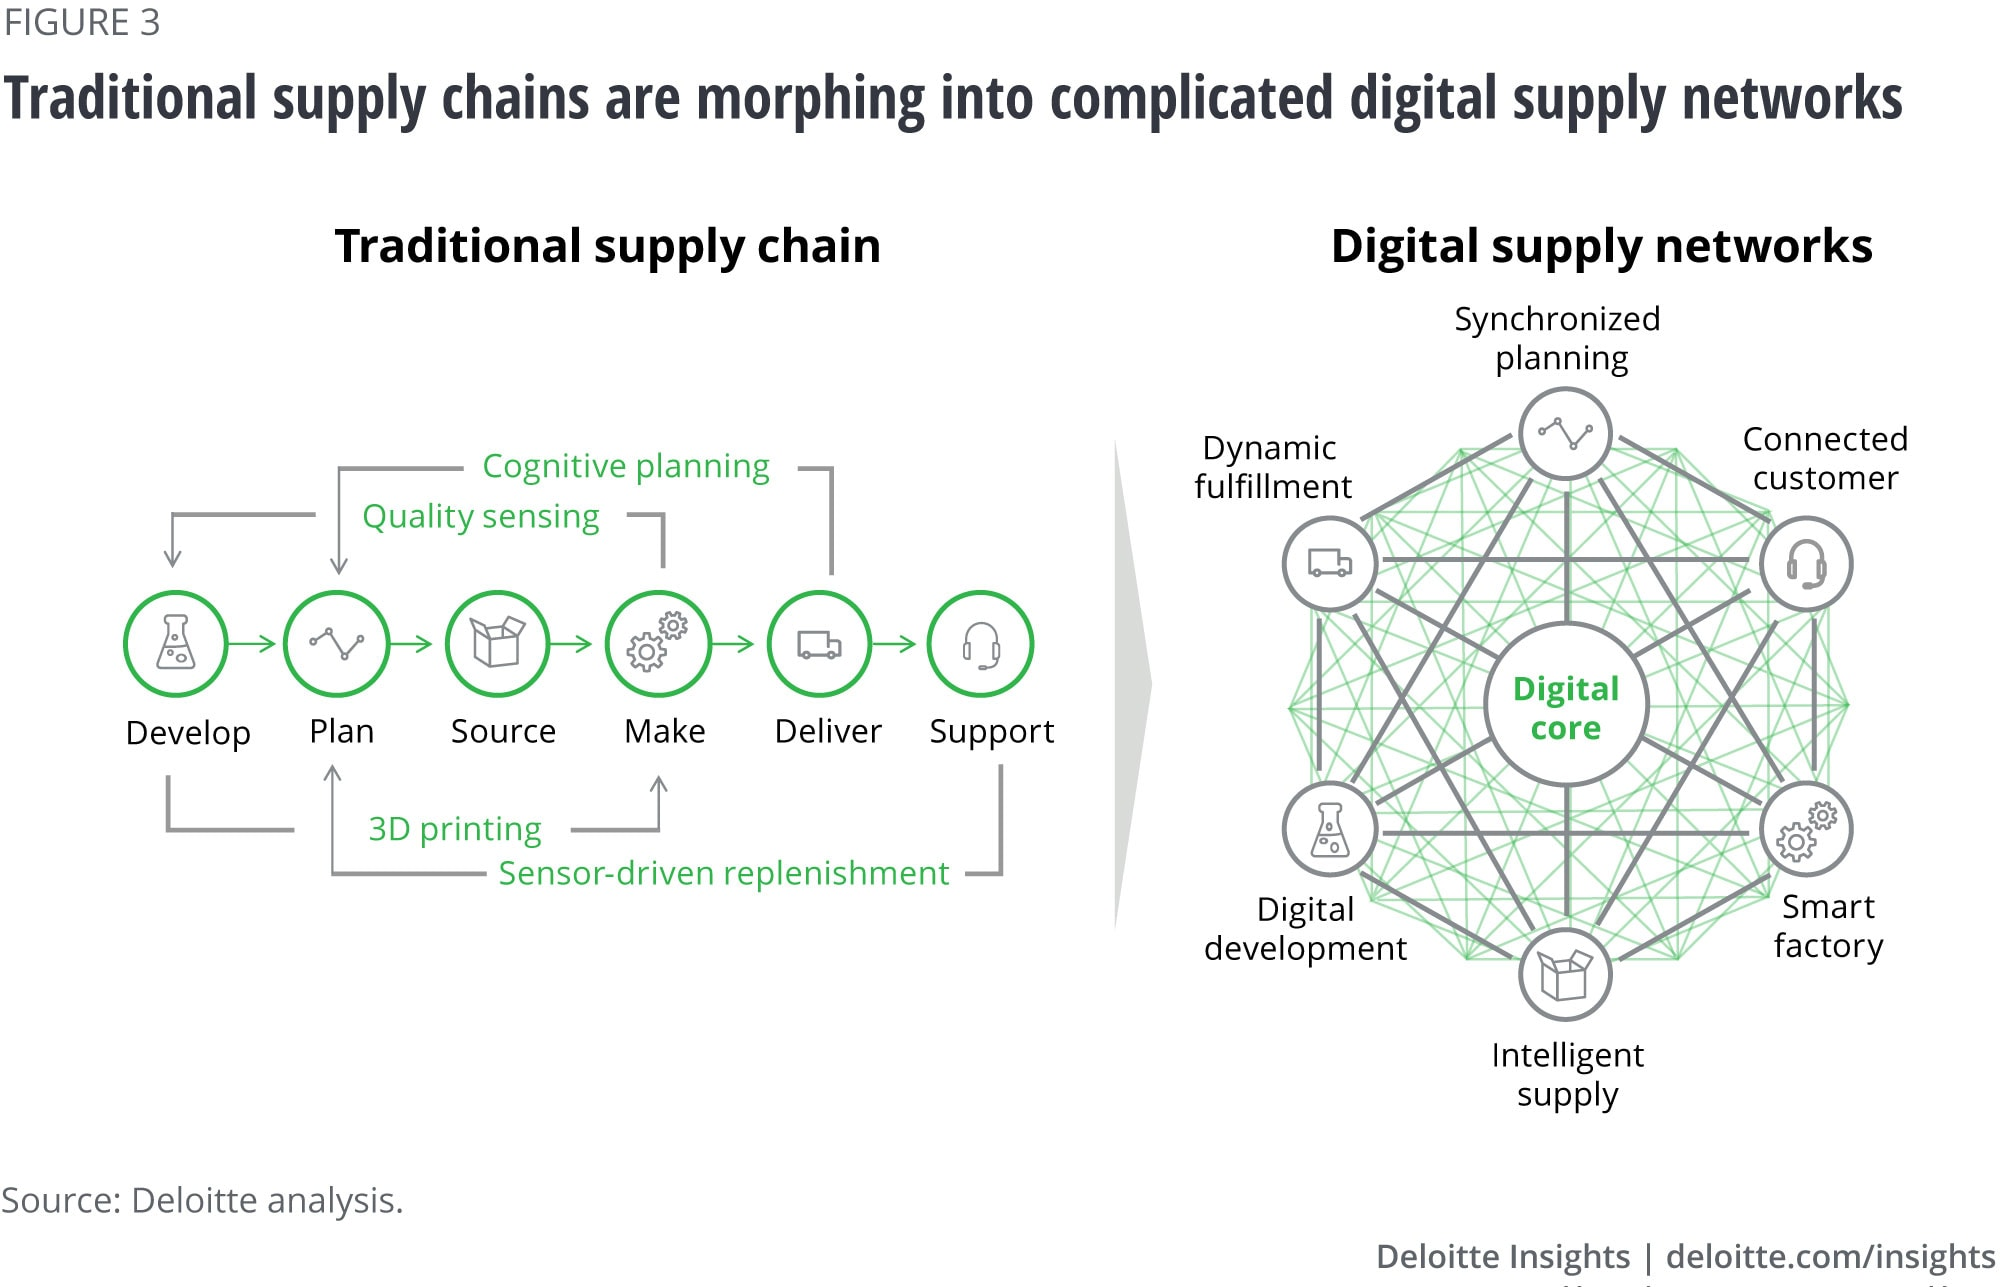 Traditional supply chains are morphing into complicated digital supply networks